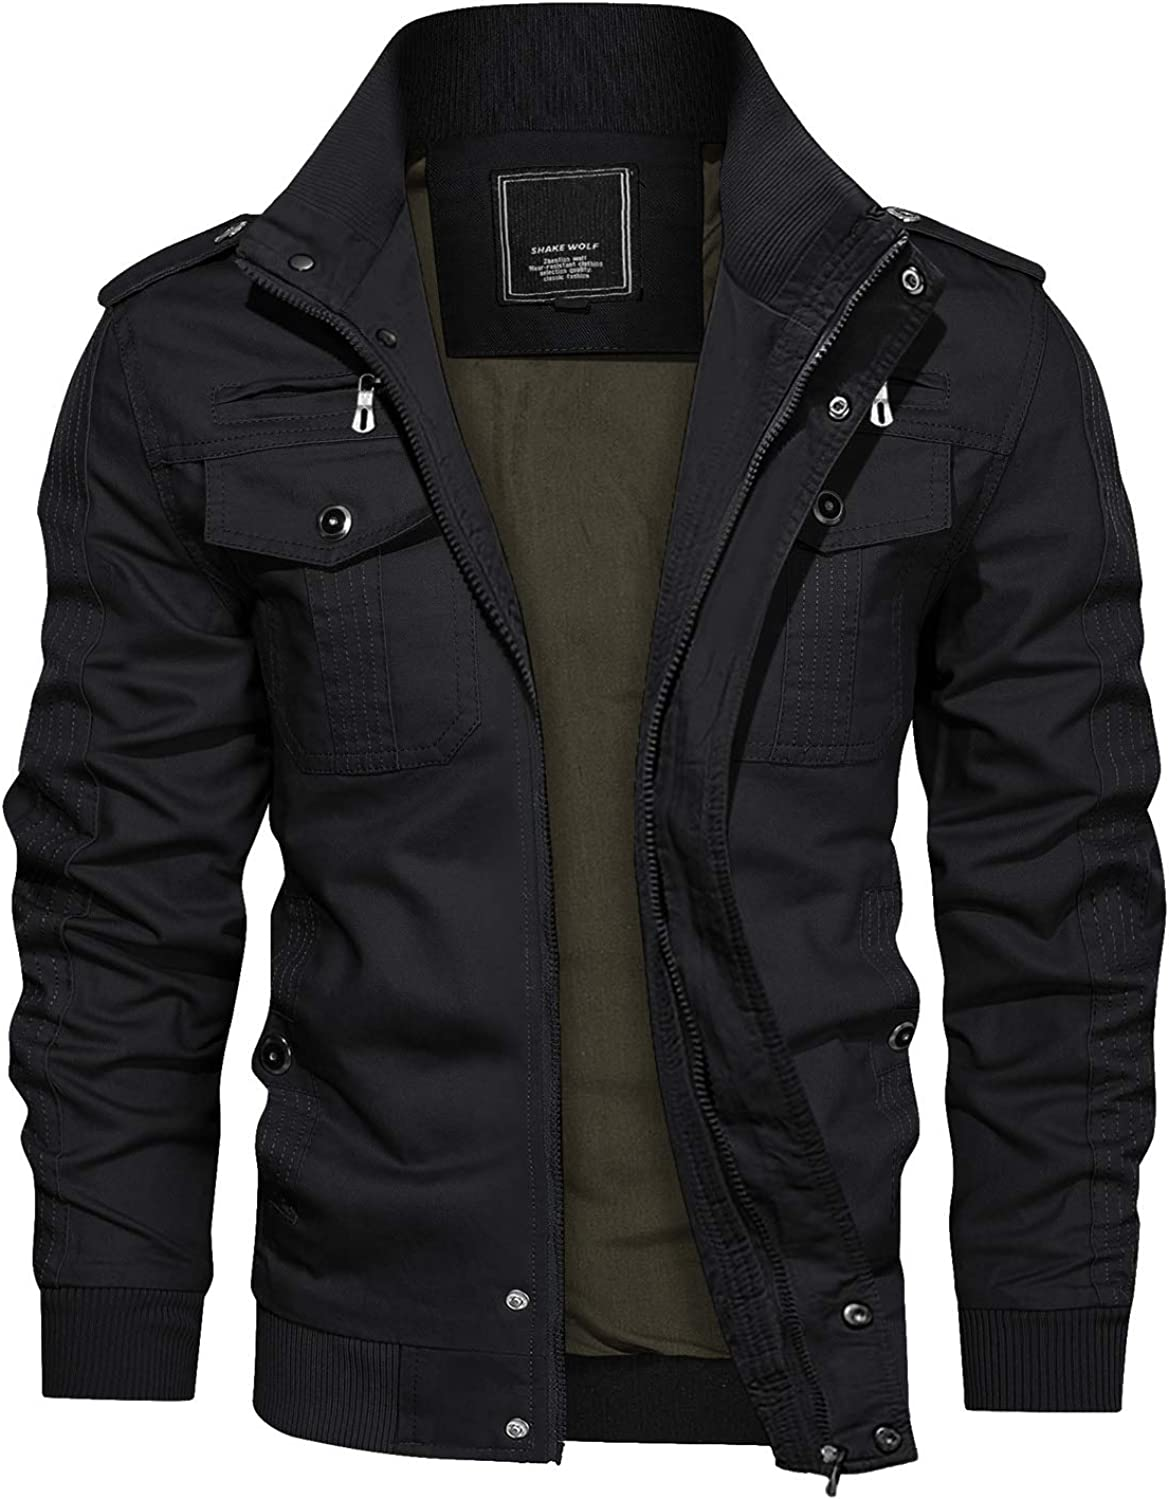 Max 43% OFF Time sale CRYSULLY Men's Spring Fall Casual Jacket Stand Cargo Windbreaker